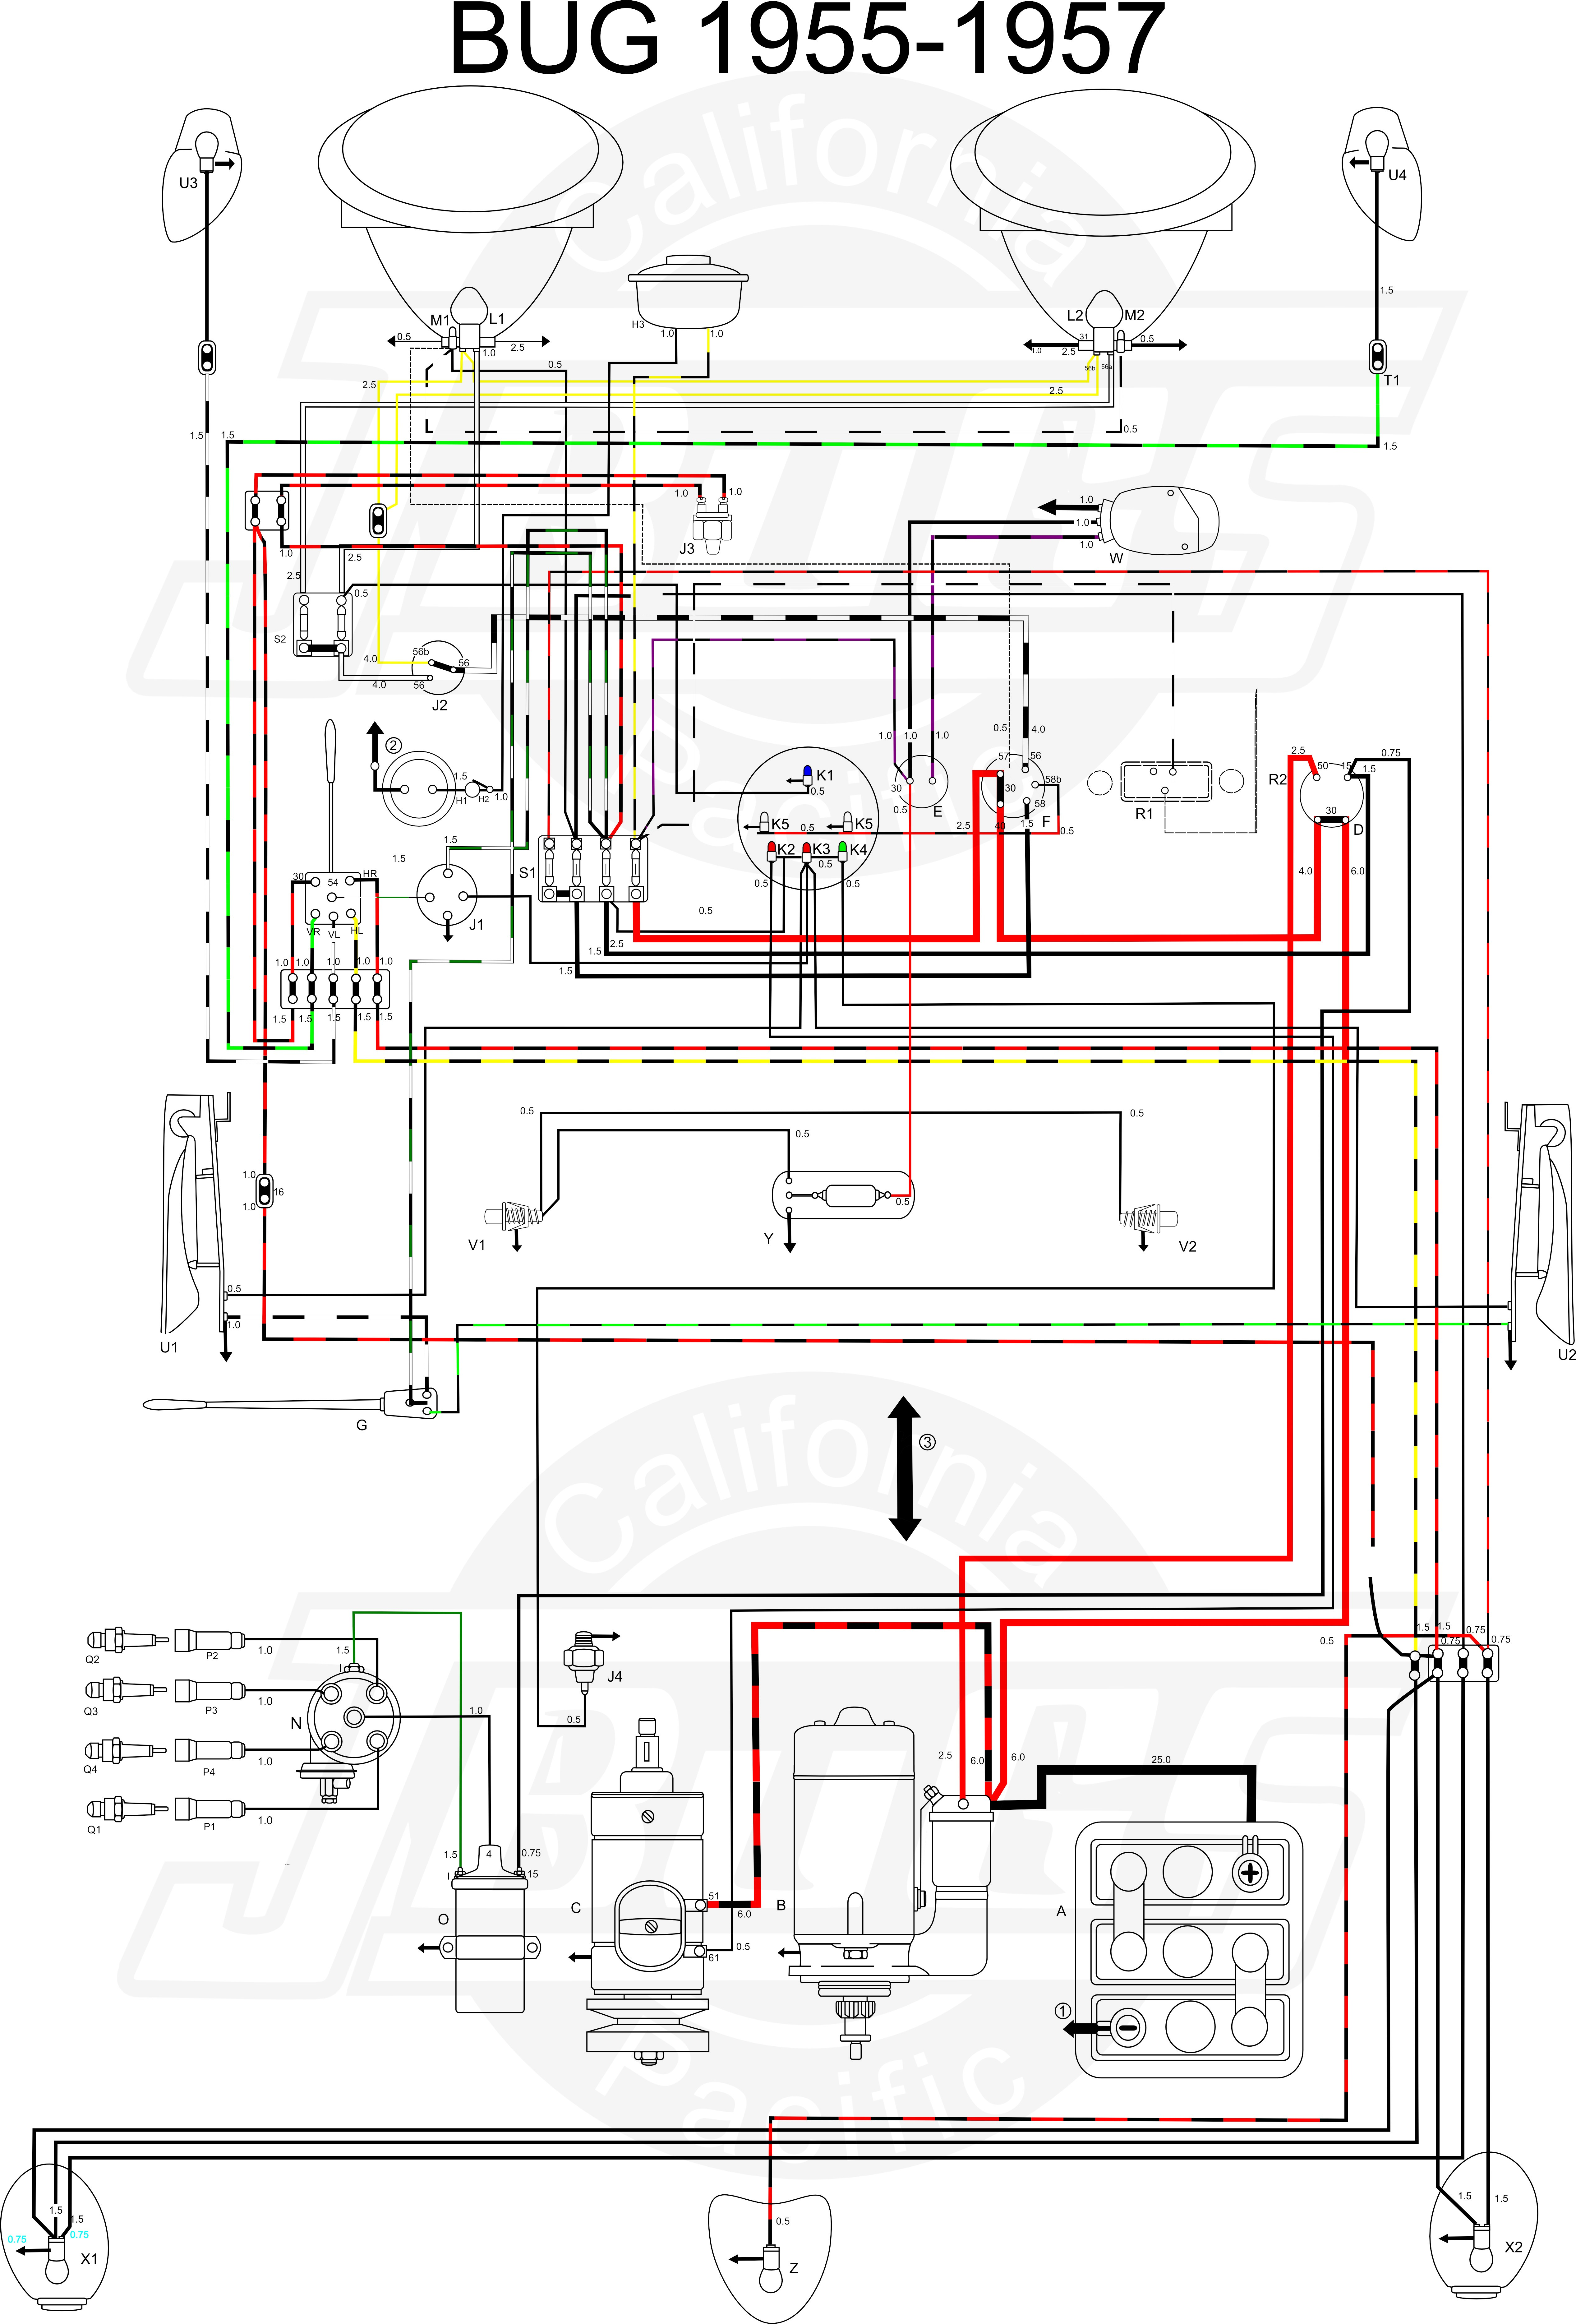 fuel gauge wiring diagram for vw trike auto electrical wiring rh 6weeks co uk